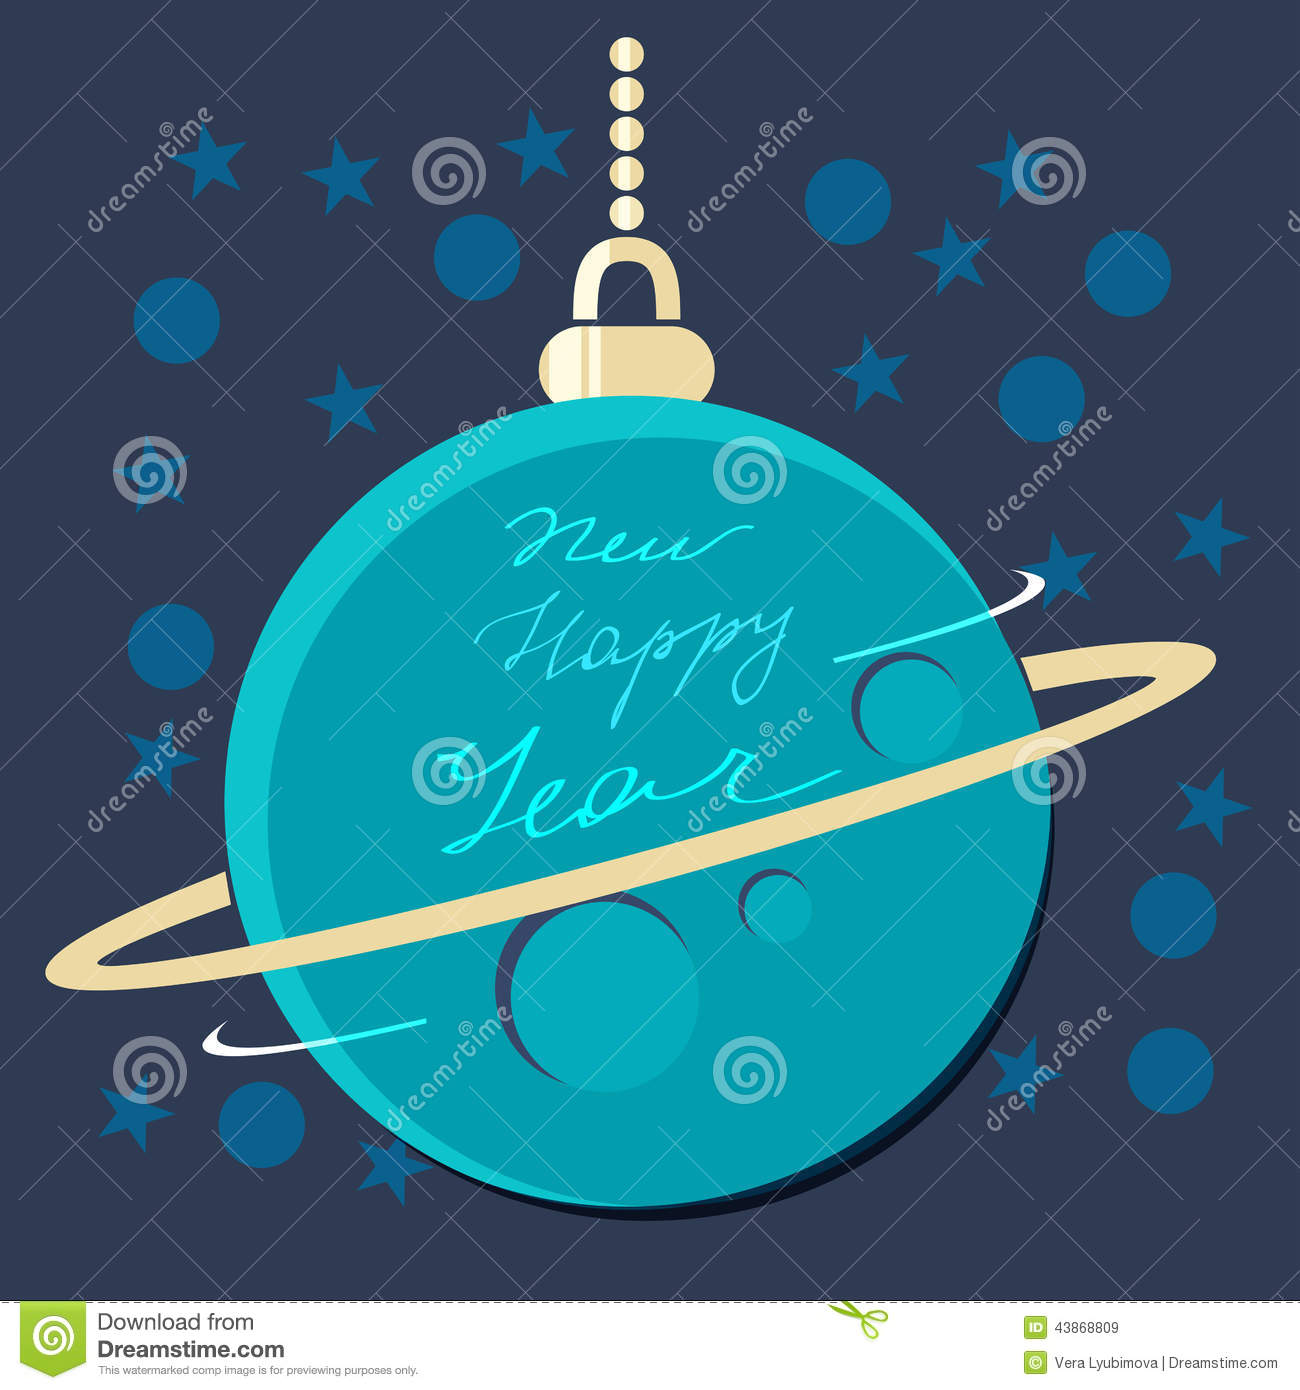 Christmas planet bauble with new year greeting stock for Outer space planning and design